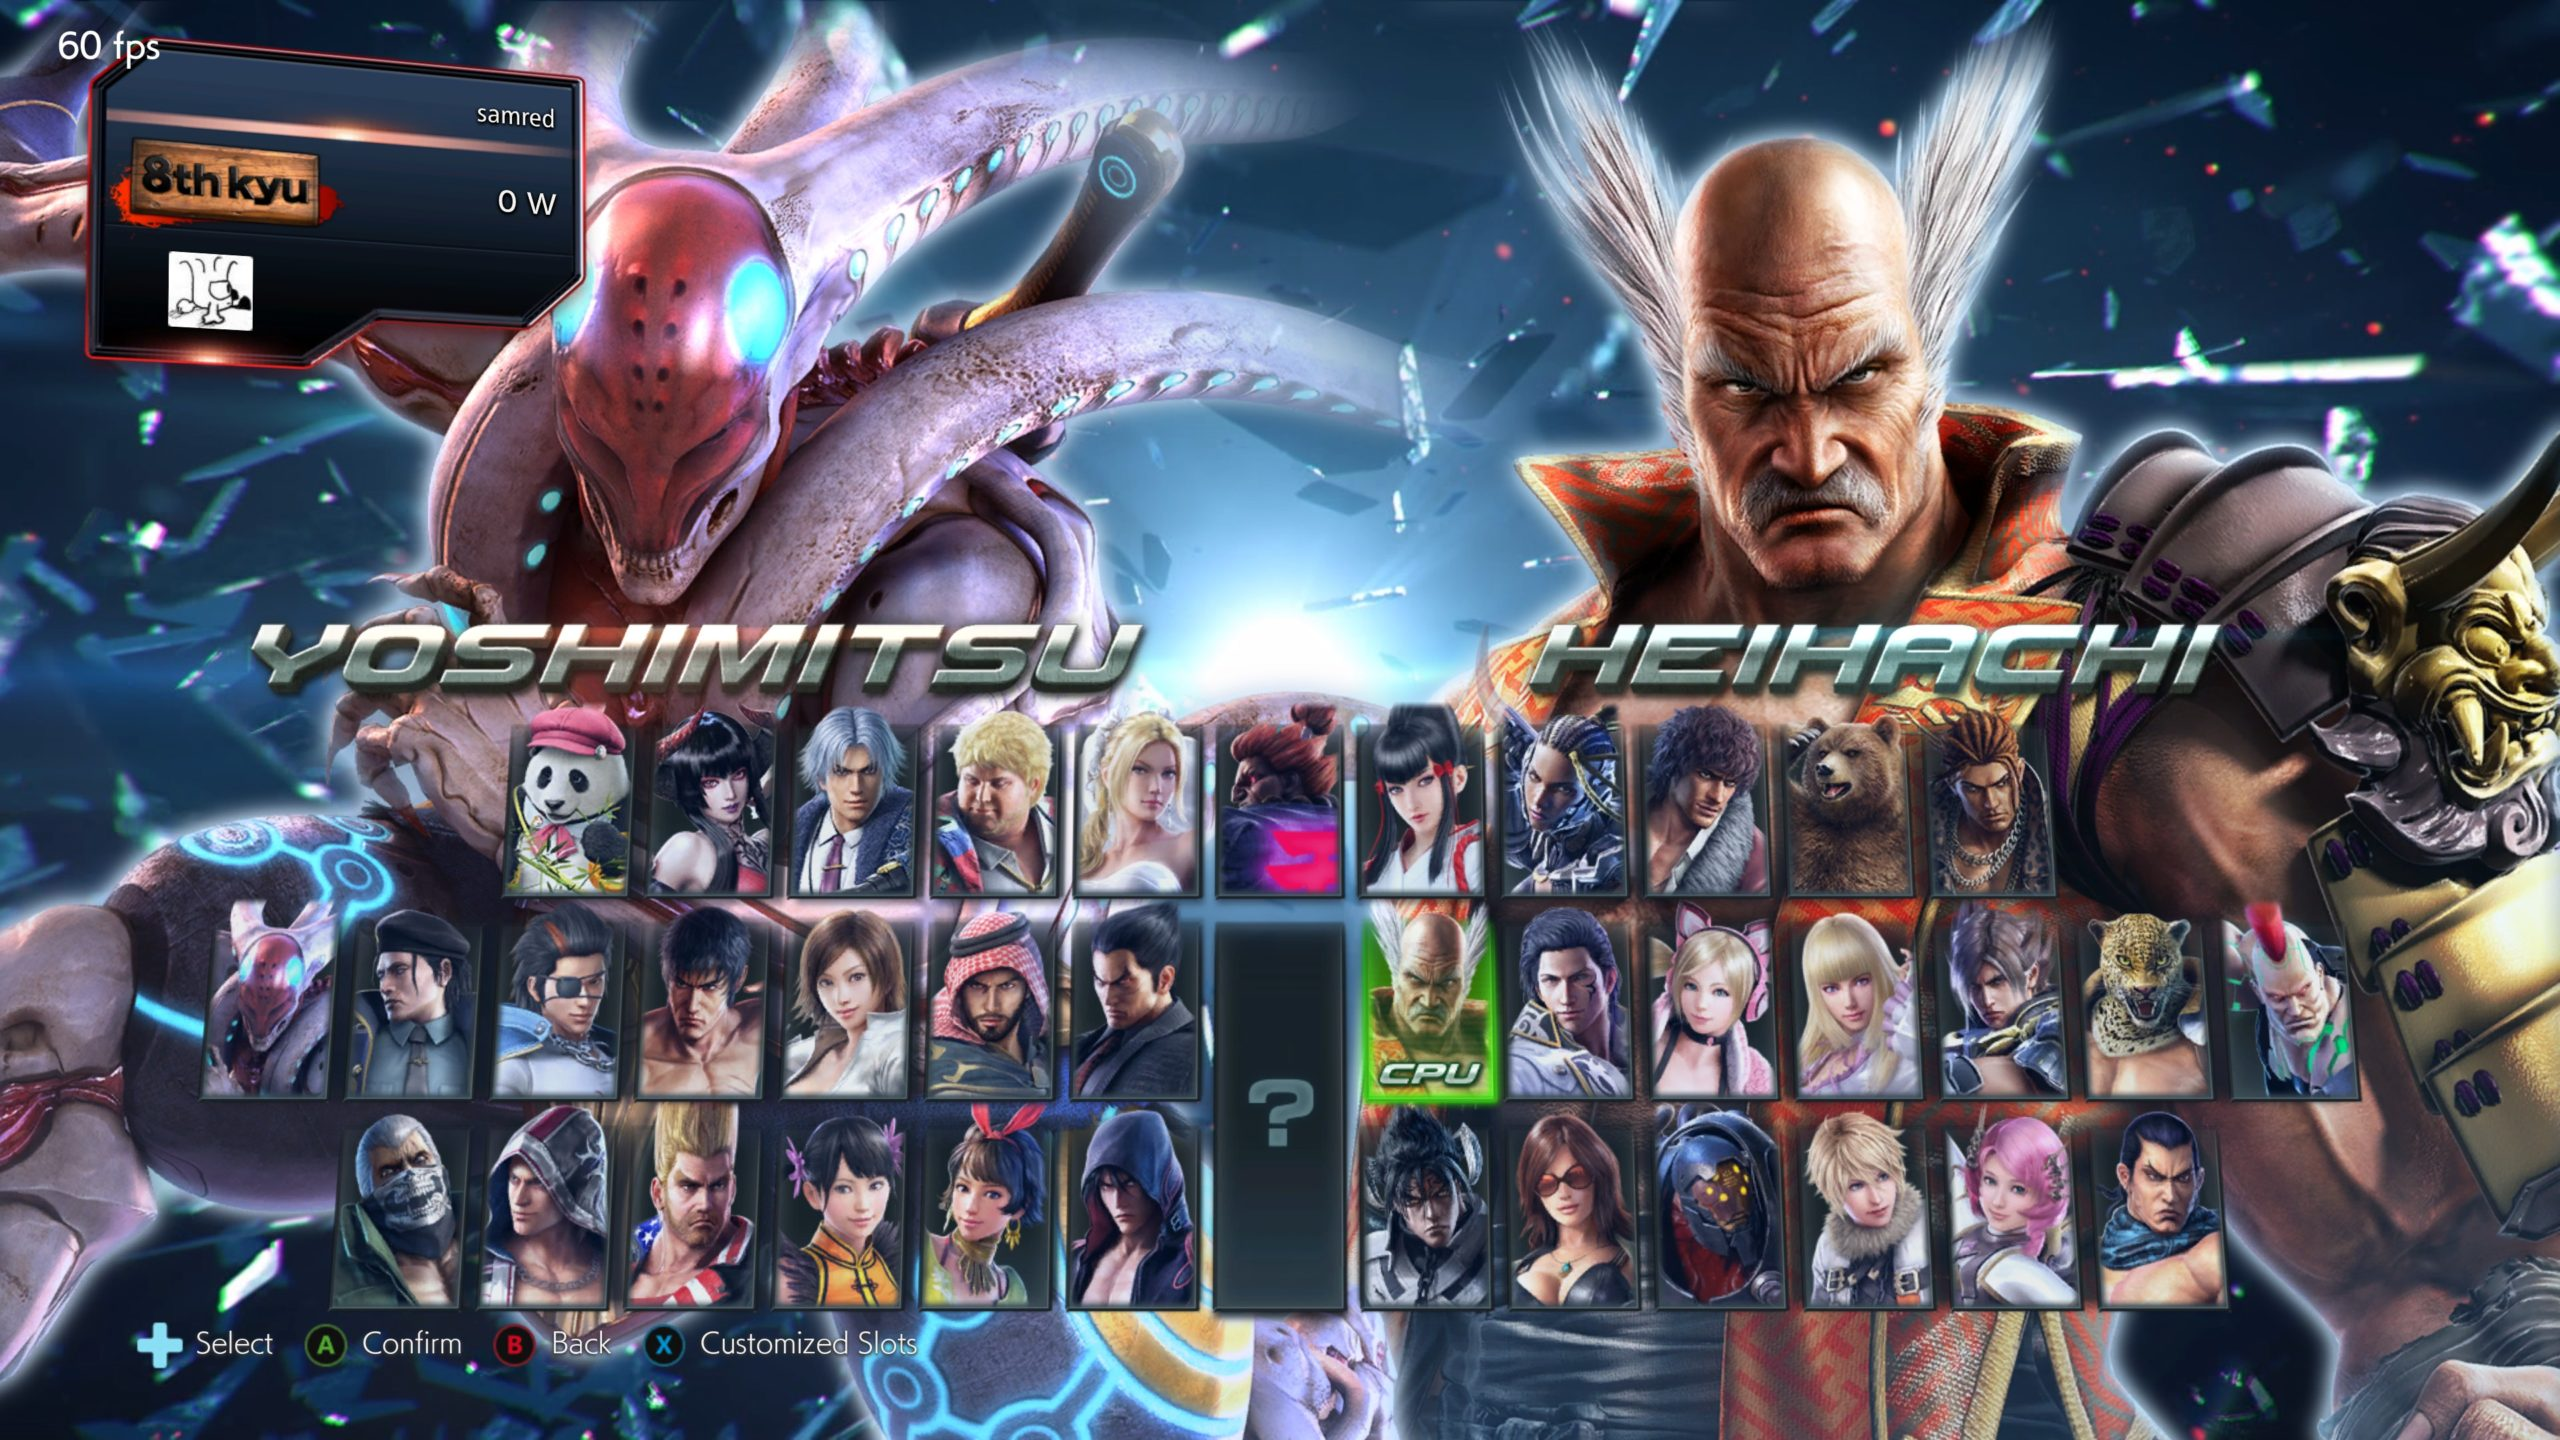 Tekken 7 Tier List Best To Worst 2020 Trending News Buzz